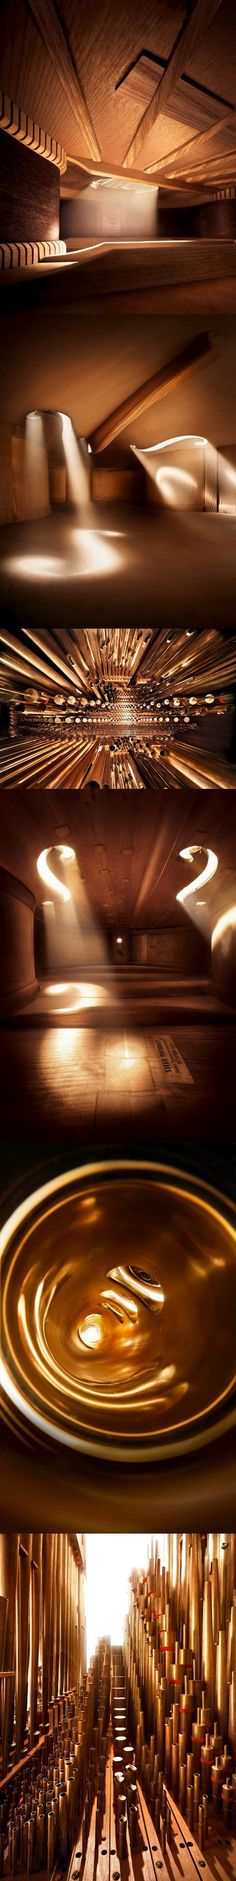 Inside beautiful musical instruments...